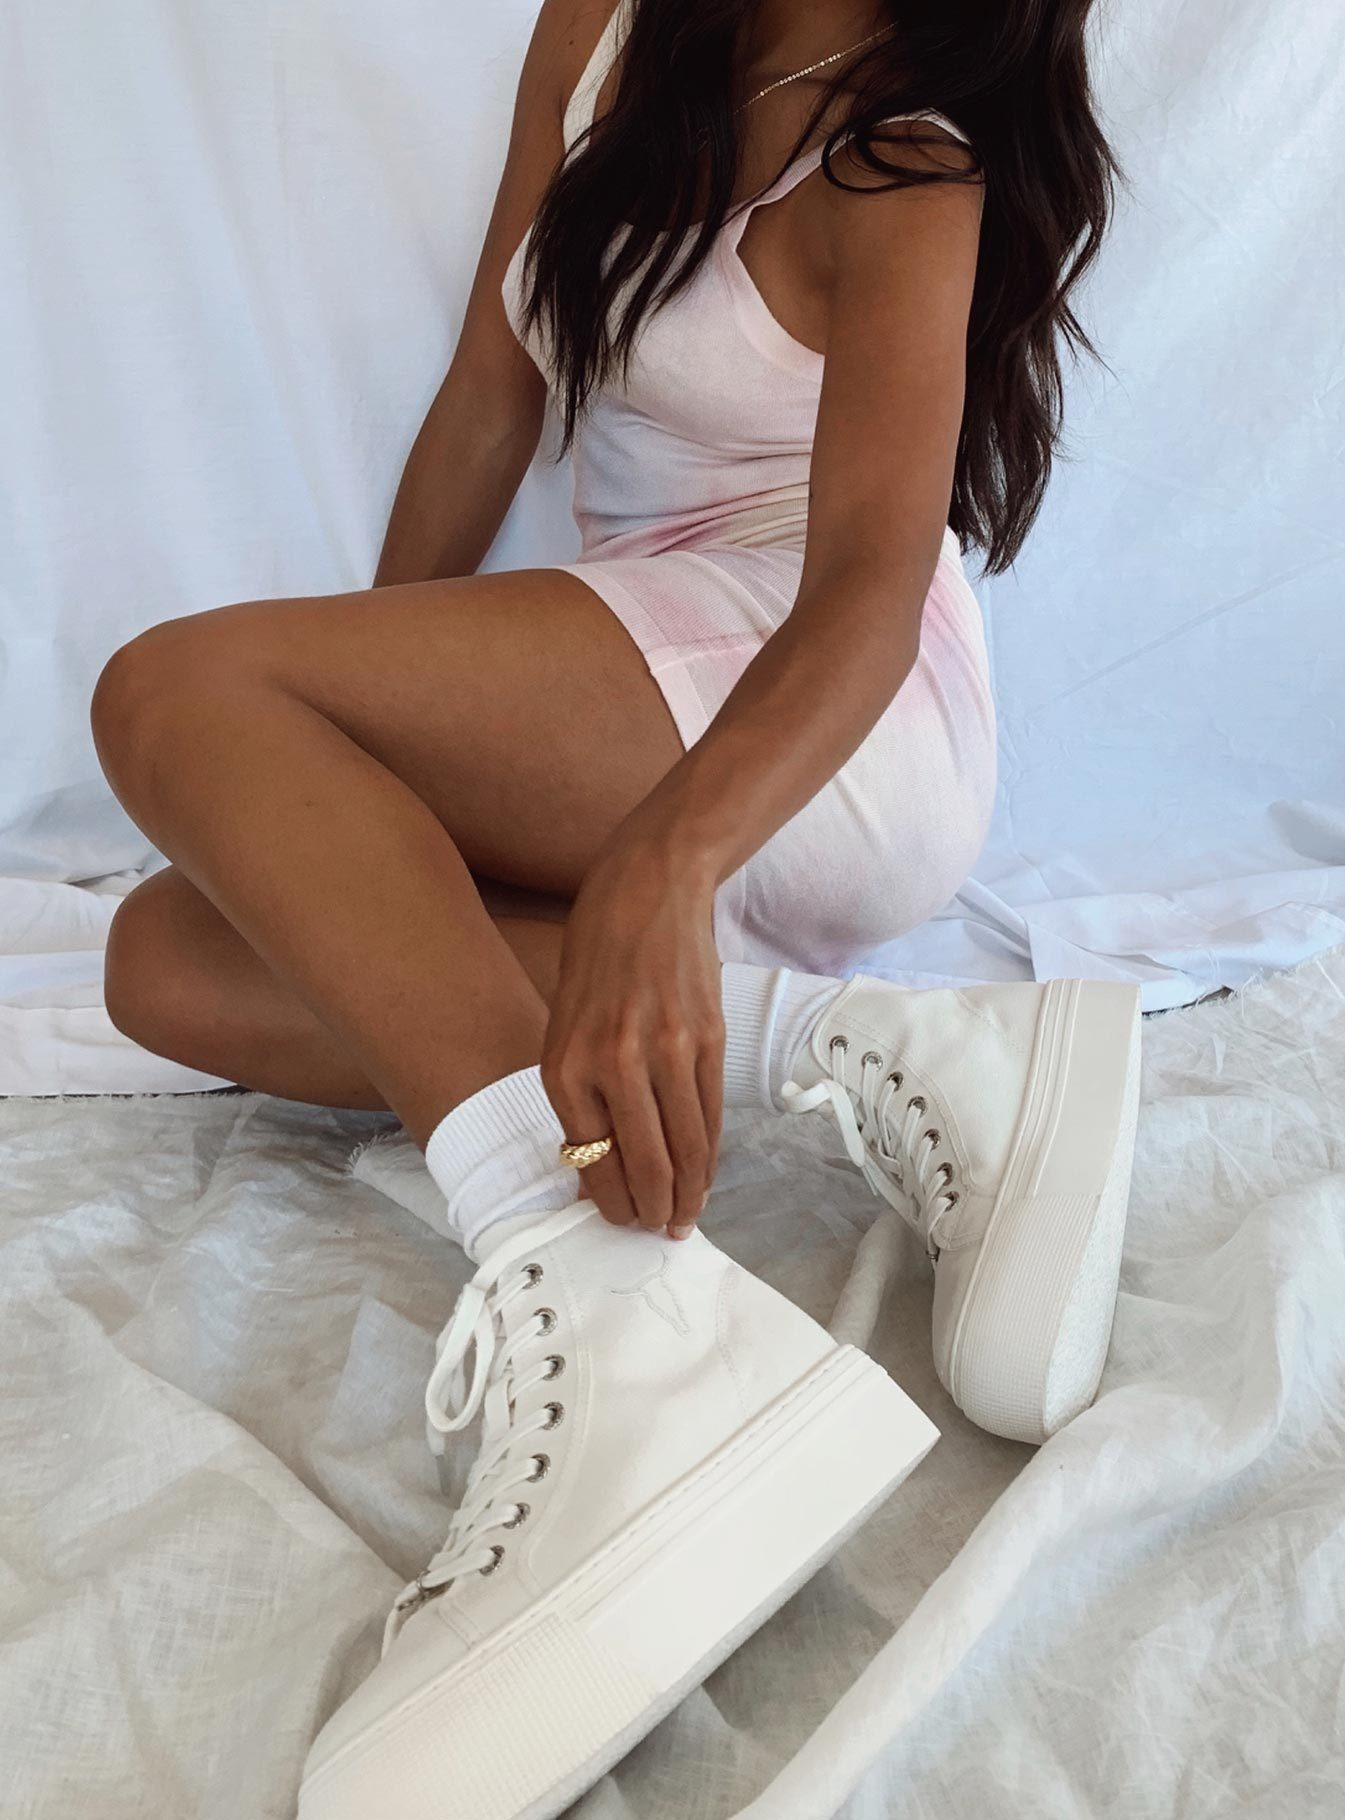 Sneakers (Side A)